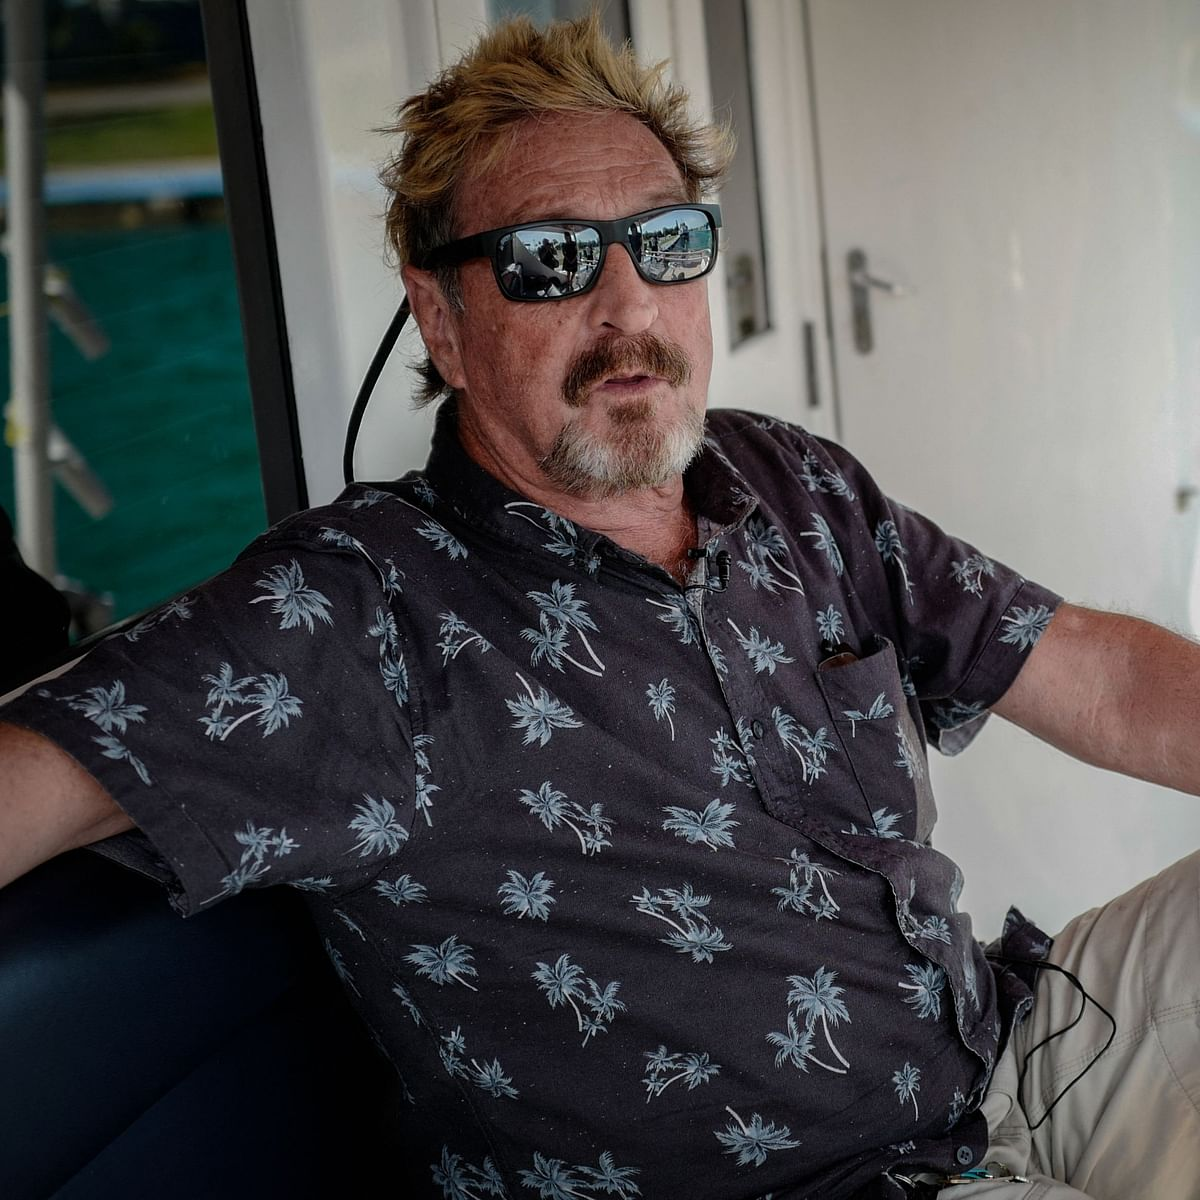 Antivirus creator John McAfee found dead in prison after Spanish court allows extradition to US